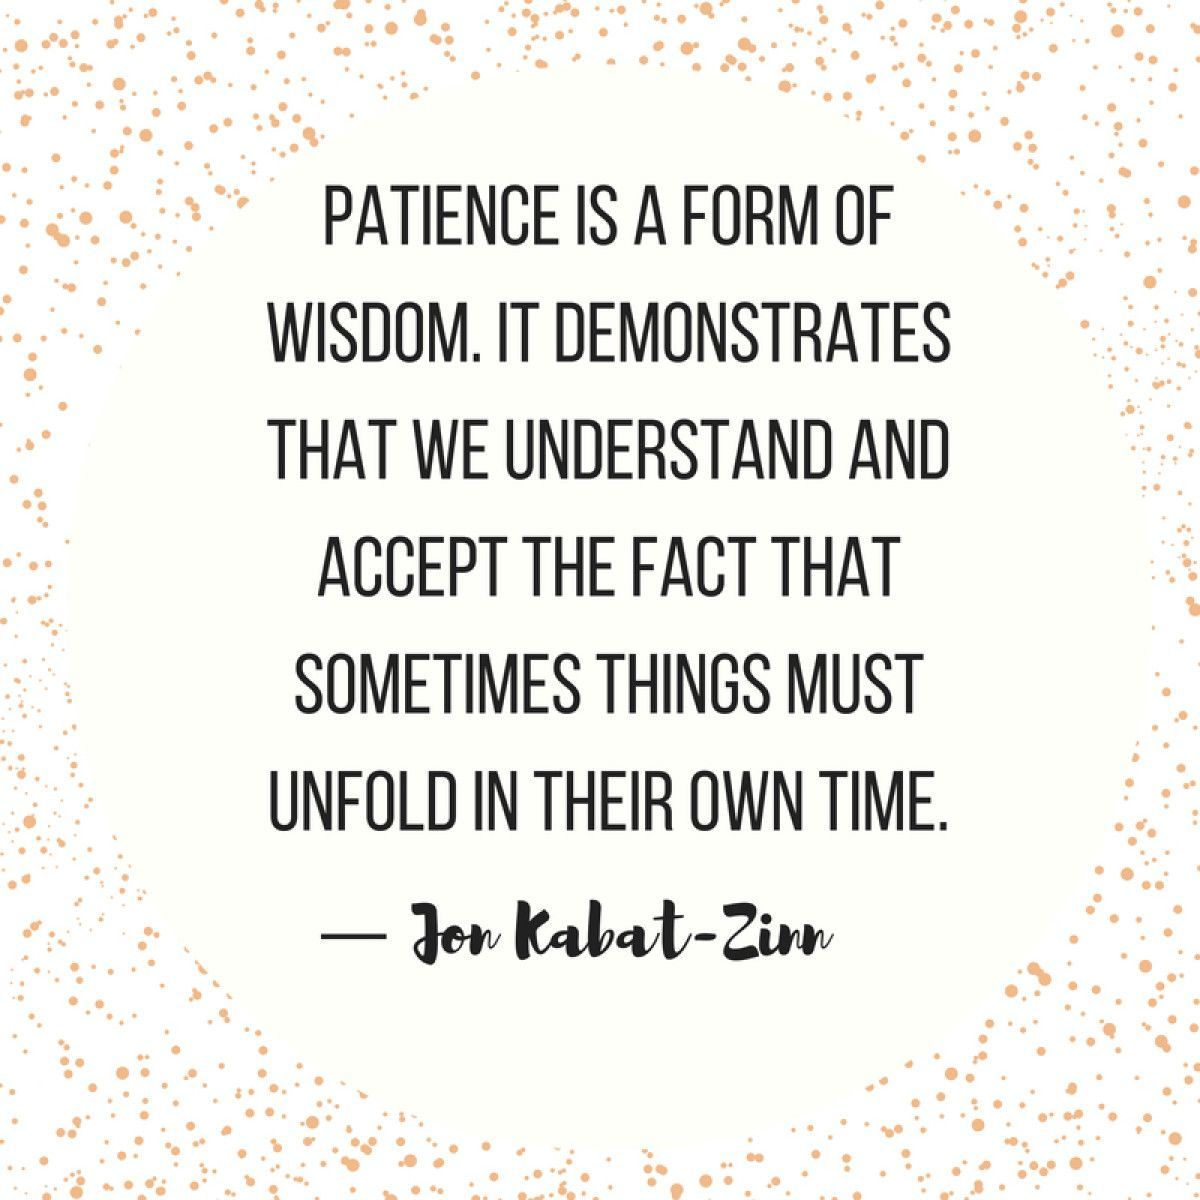 for When Life Gets Overwhelming - Jon Kabat-Zinn Patience is a form of wisdom. It demonstrates that we understand and accept the fact that sometimes things must unfold in their own time. — Jon Kabat-ZinnPatience is a form of wisdom. It demonstrates that we understand and accept the fact that sometimes things must unfold in their own time. — Jon K...